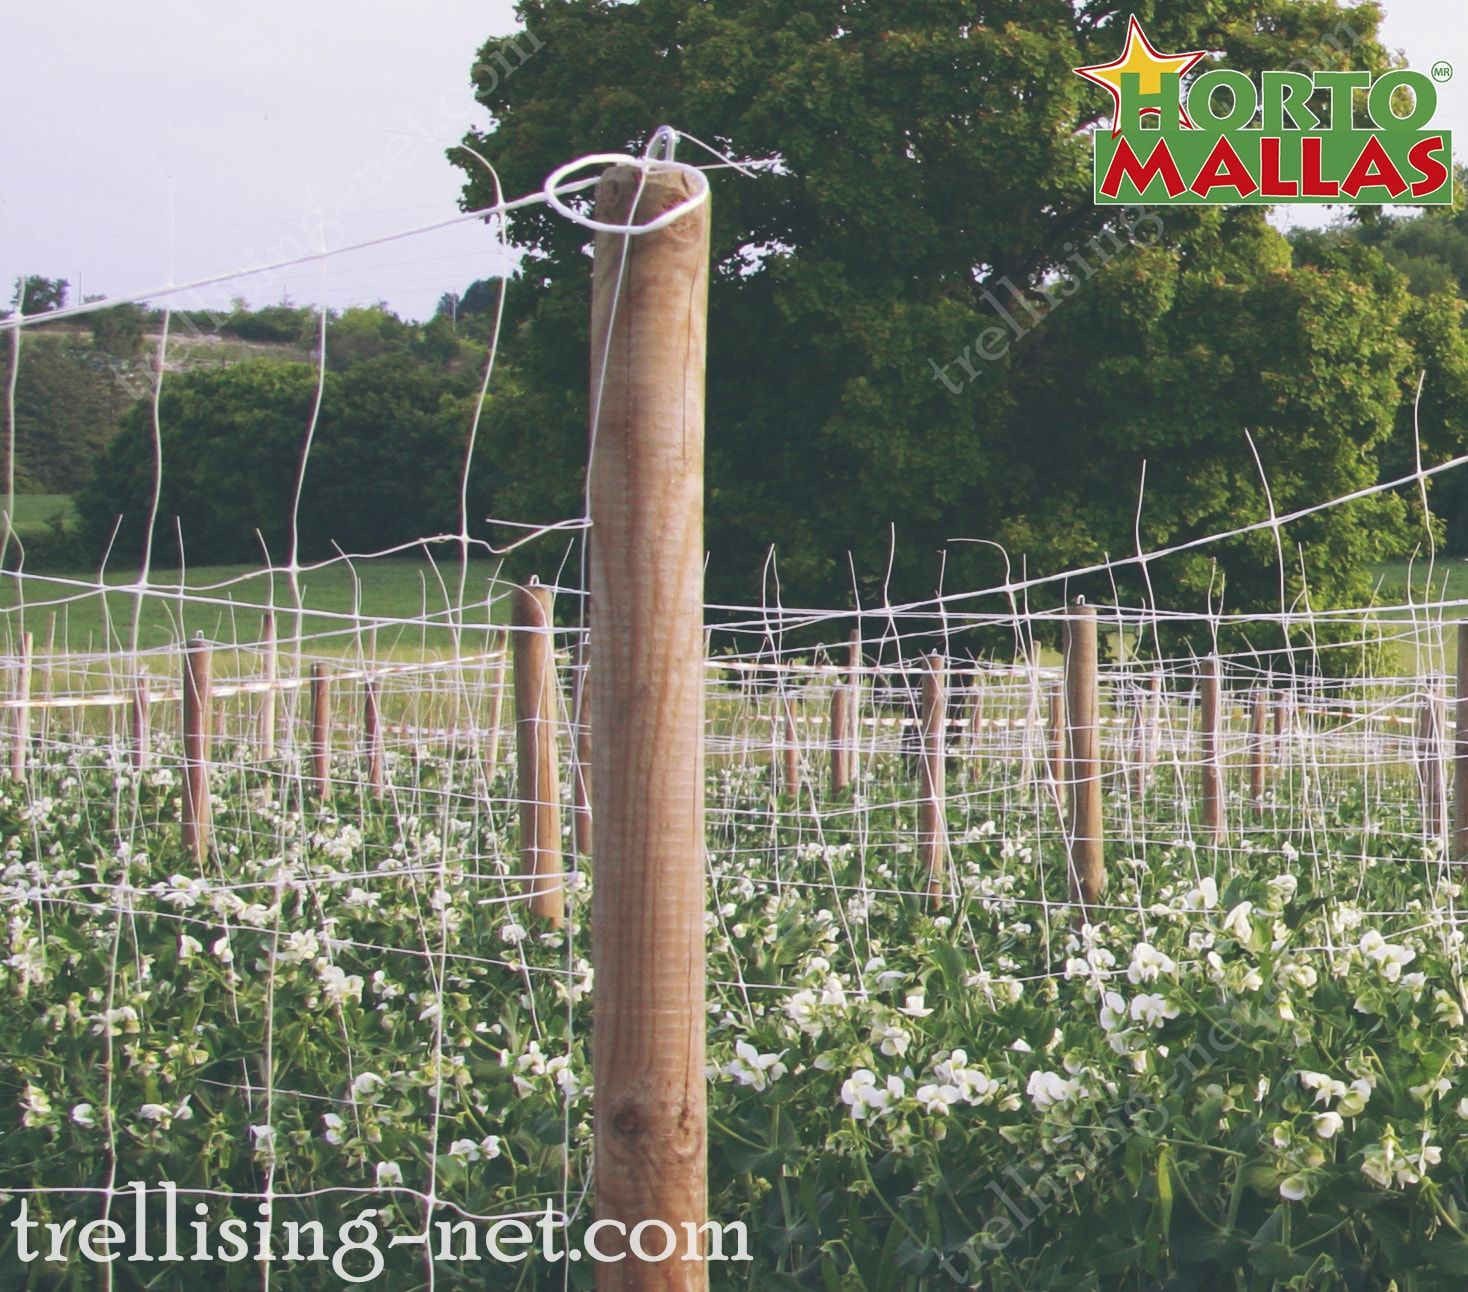 trellis net installed for the protection  of crops in the cropfield.